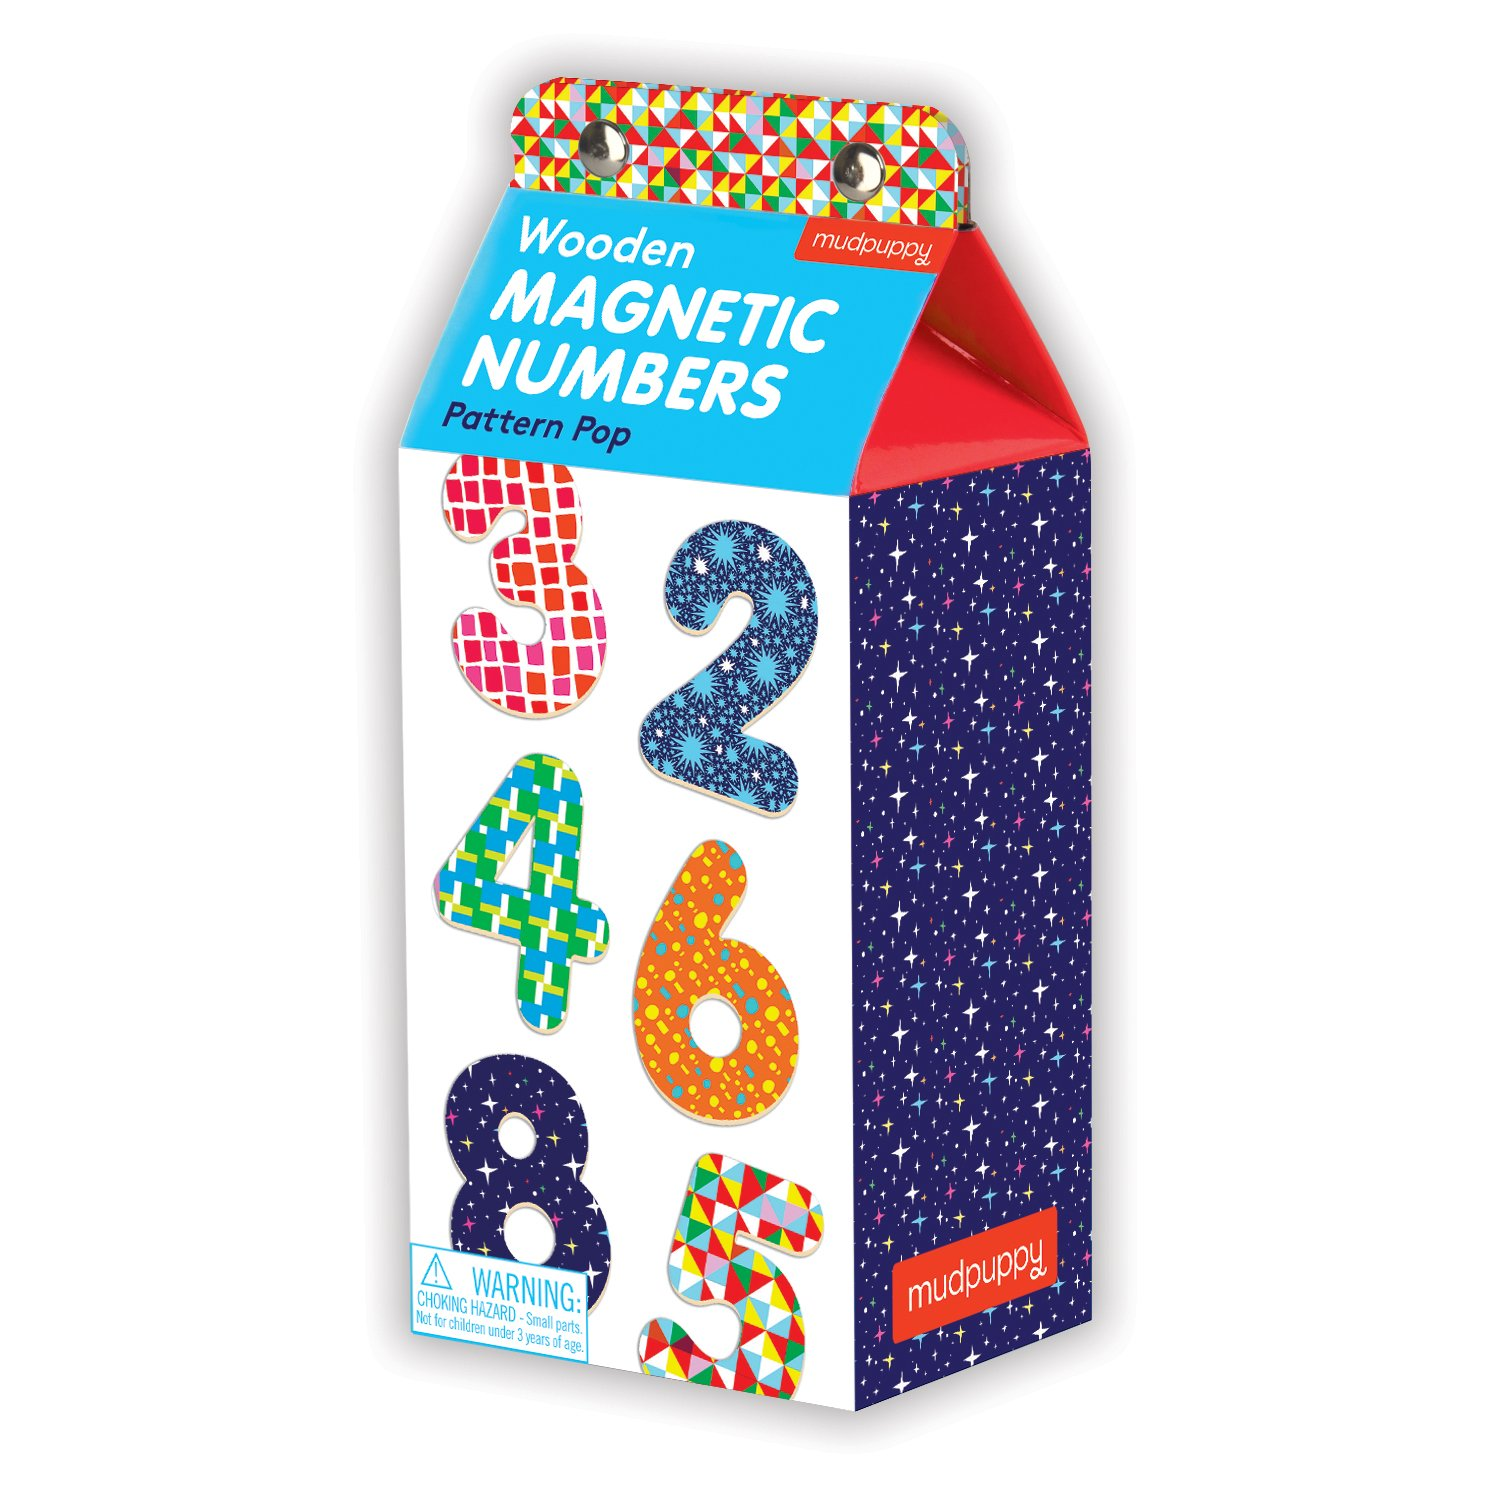 Grades 1-2 JUVENILE NONFICTION General Children Toys NON-CLASSIFIABLE Stationery items Unclassifiable Mudpuppy Keith Haring Wooden Magnetic Shapes 9780735343962 Toys Dolls /& Puppets ANF WZ BIC